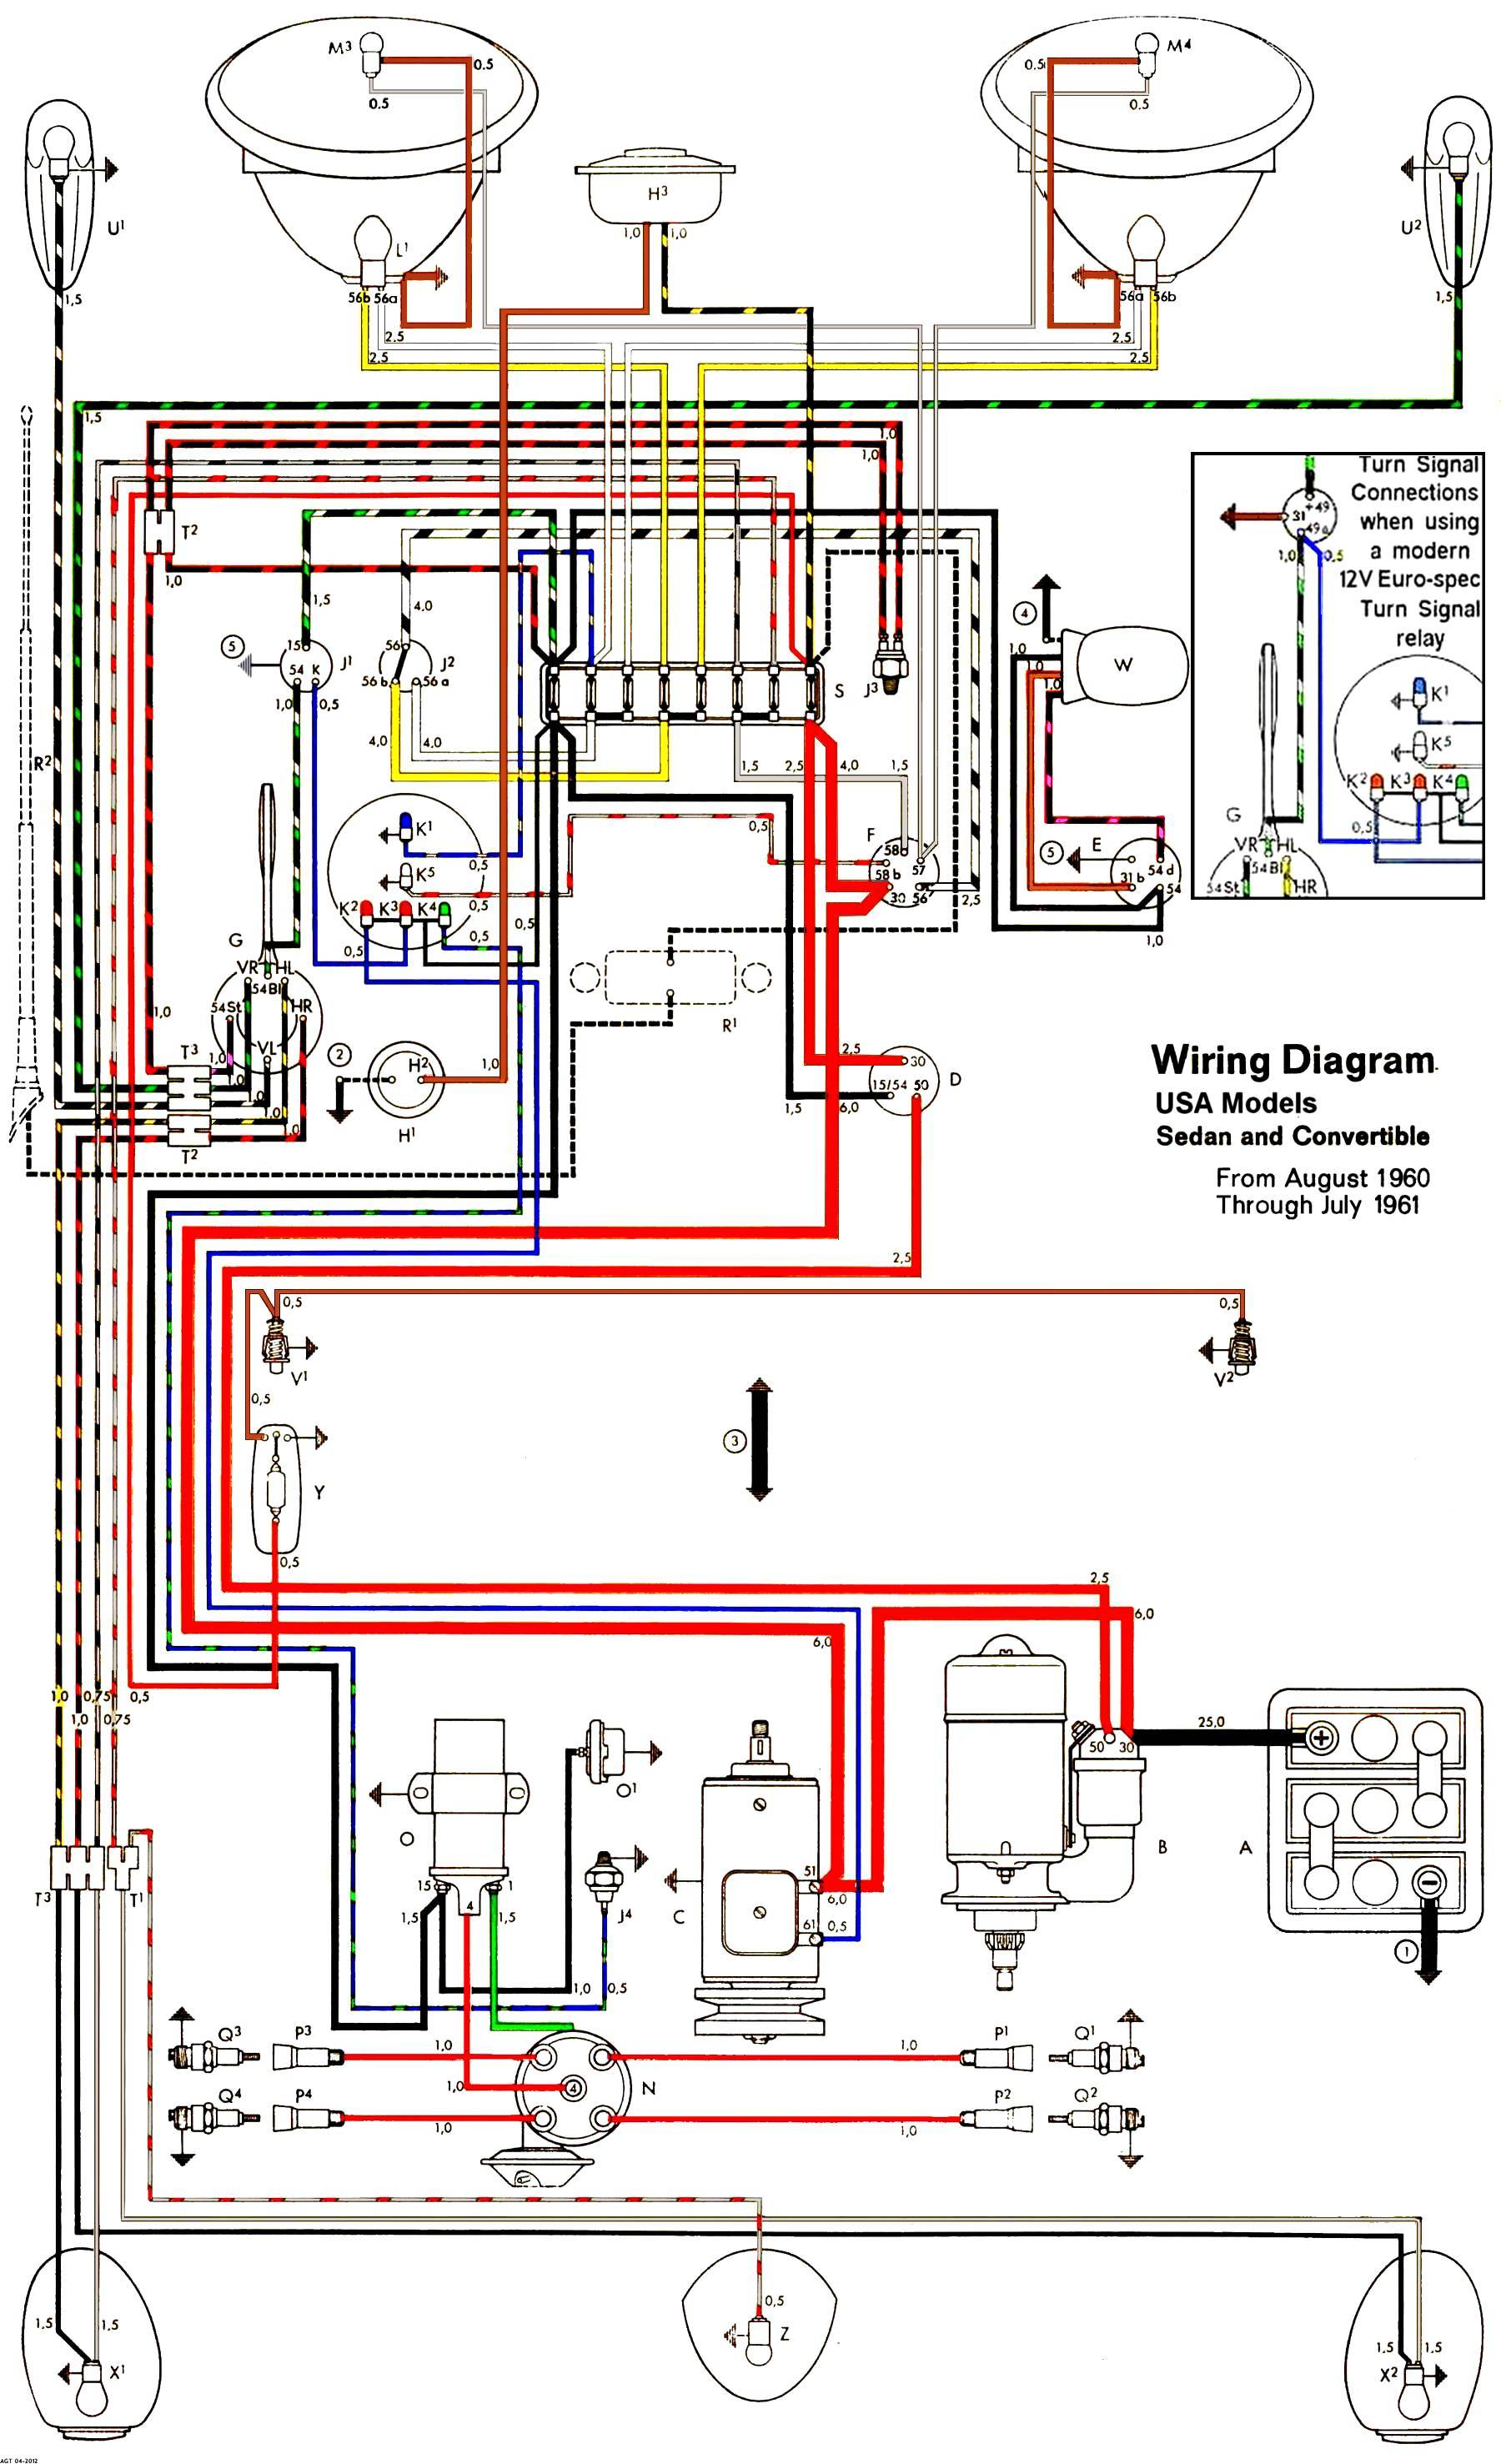 70 Camaro Wiper Wiring Diagrams | Wiring Liry on 1970 camaro dimensions, 1970 camaro big block, 1970 camaro frame, 1970 camaro headlight, 1970 camaro wiper motor, 1970 camaro specification, 1970 camaro exploded view, 1970 camaro brochure, 1970 camaro voltage regulator, 1970 camaro door, 1970 camaro green, 1970 camaro exhaust system, 1970 camaro fuel pump, 1970 camaro super sport, 1970 camaro orange, 1970 camaro ss 350, 1970 camaro rear, 1970 camaro engine, 1970 camaro starter,